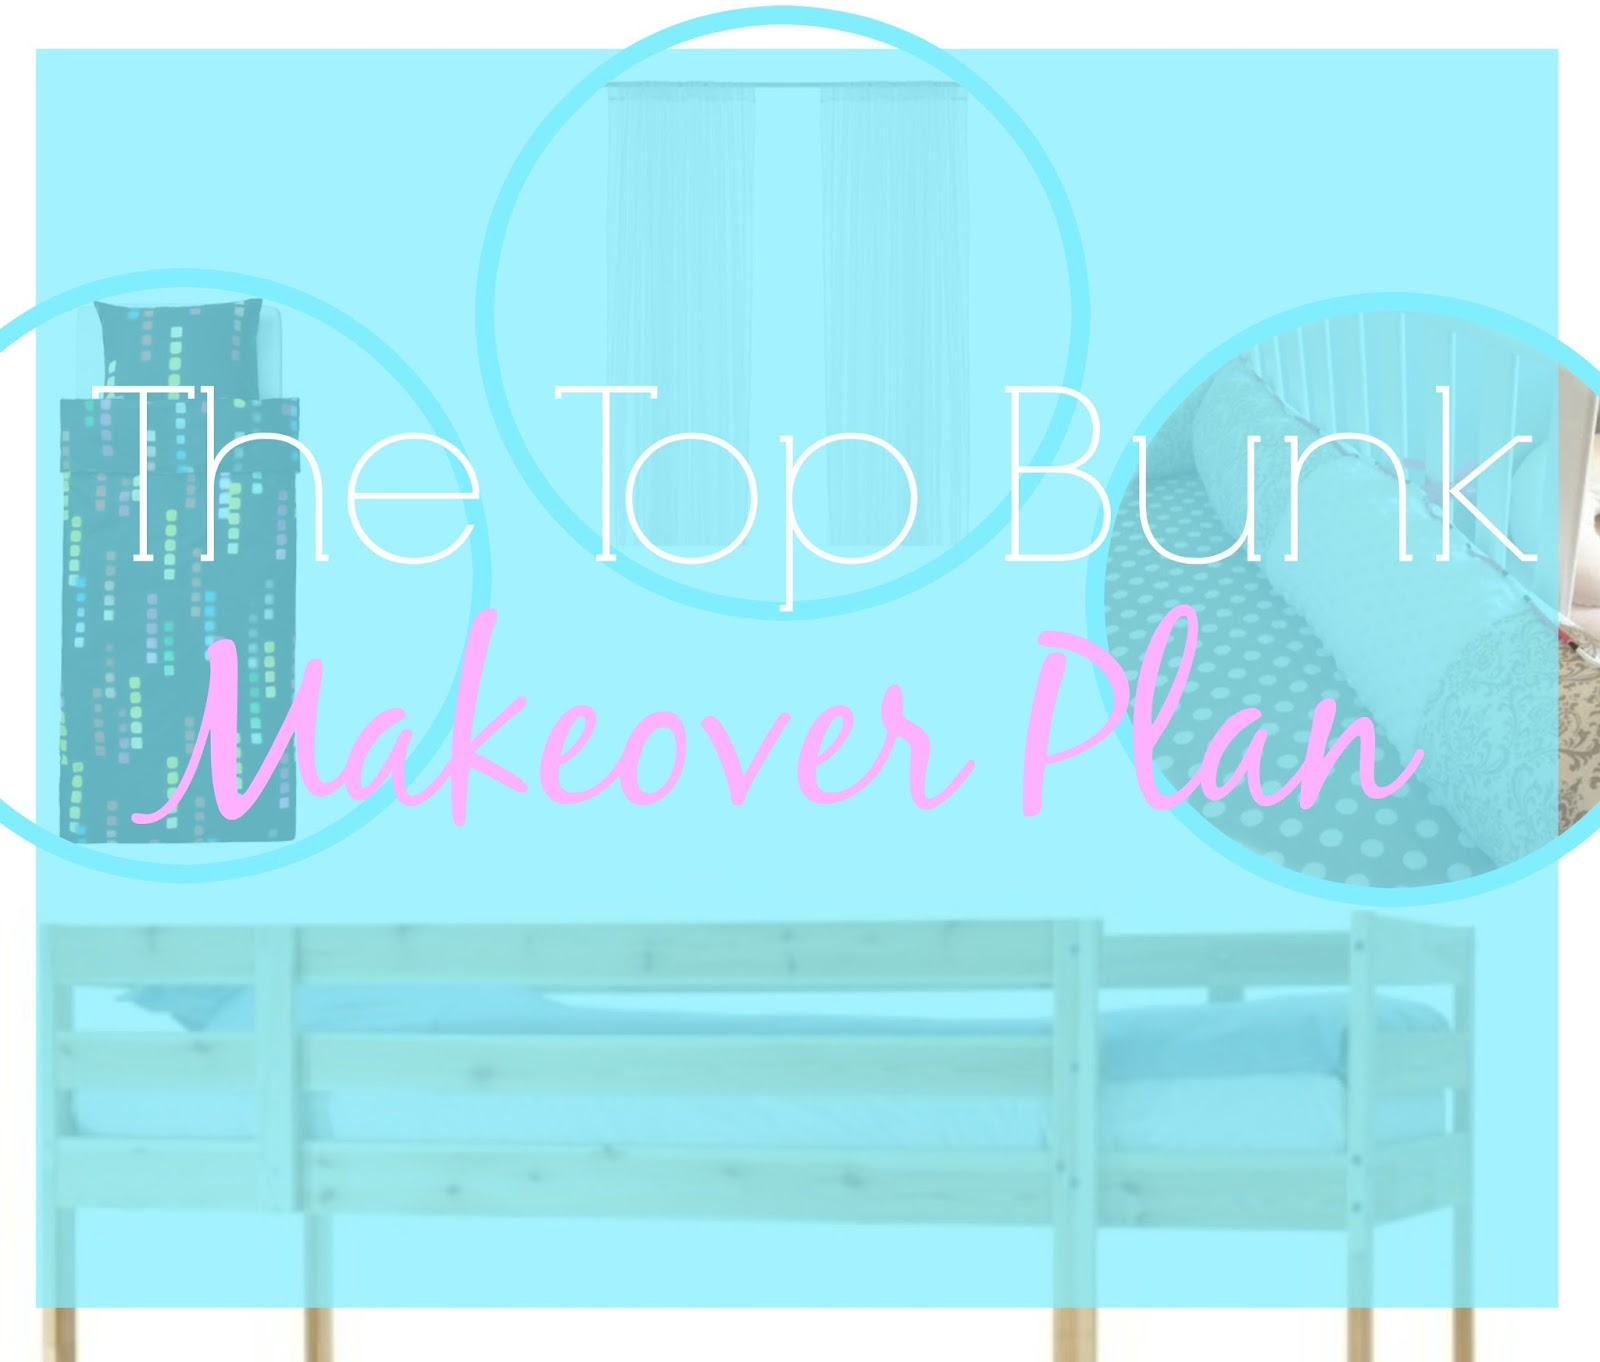 bunk bed makeover plan